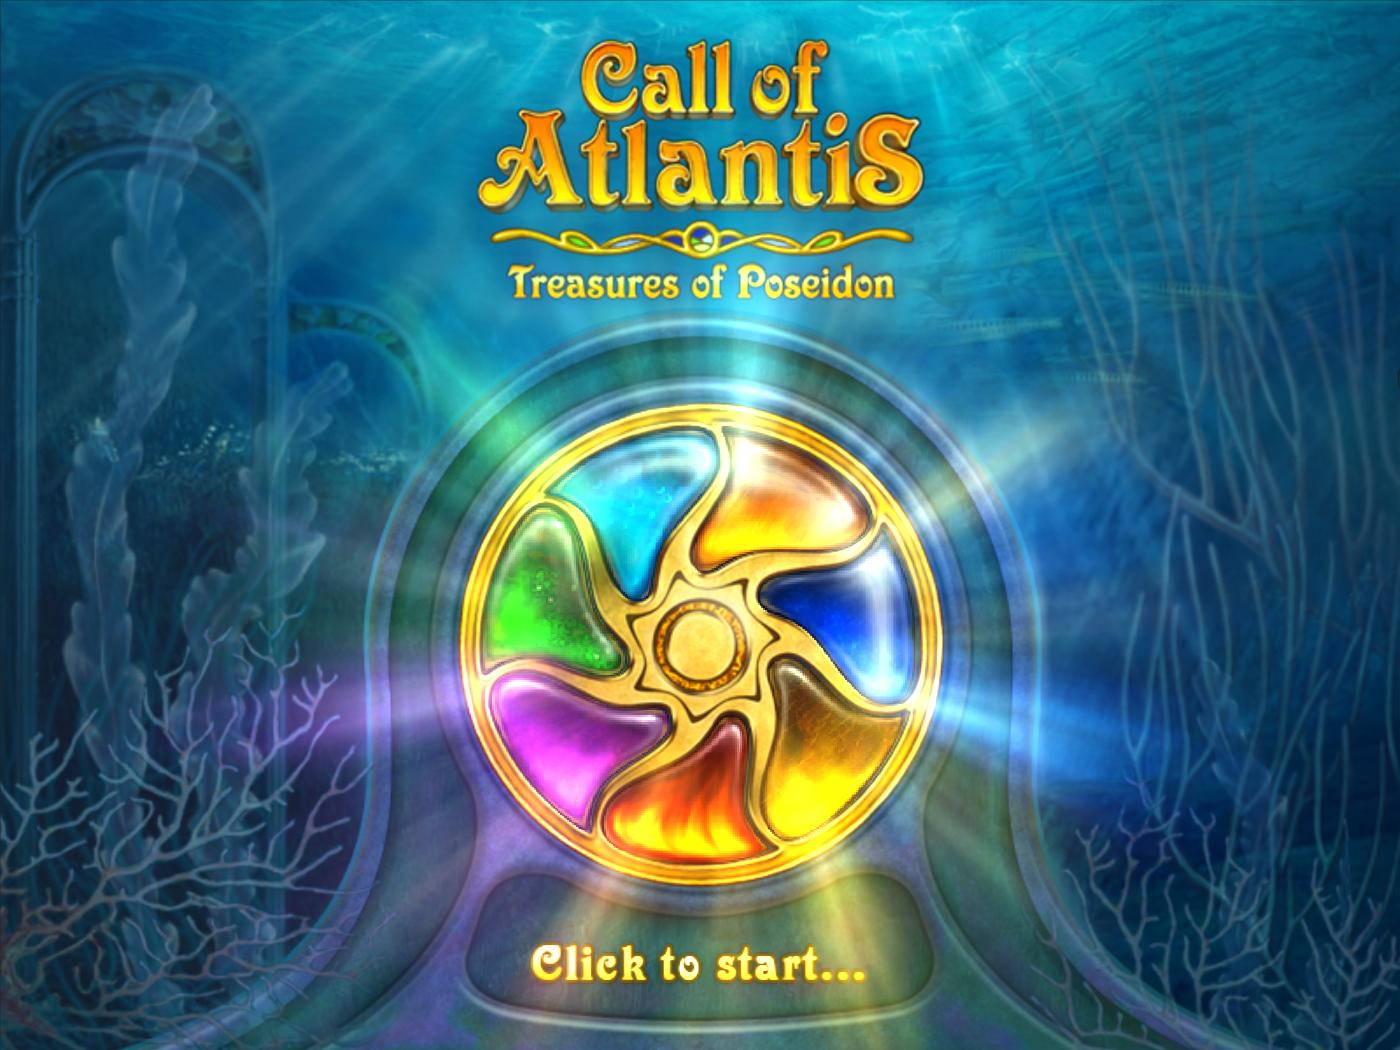 Call of Atlantis Treasures of Poseidon PC Game